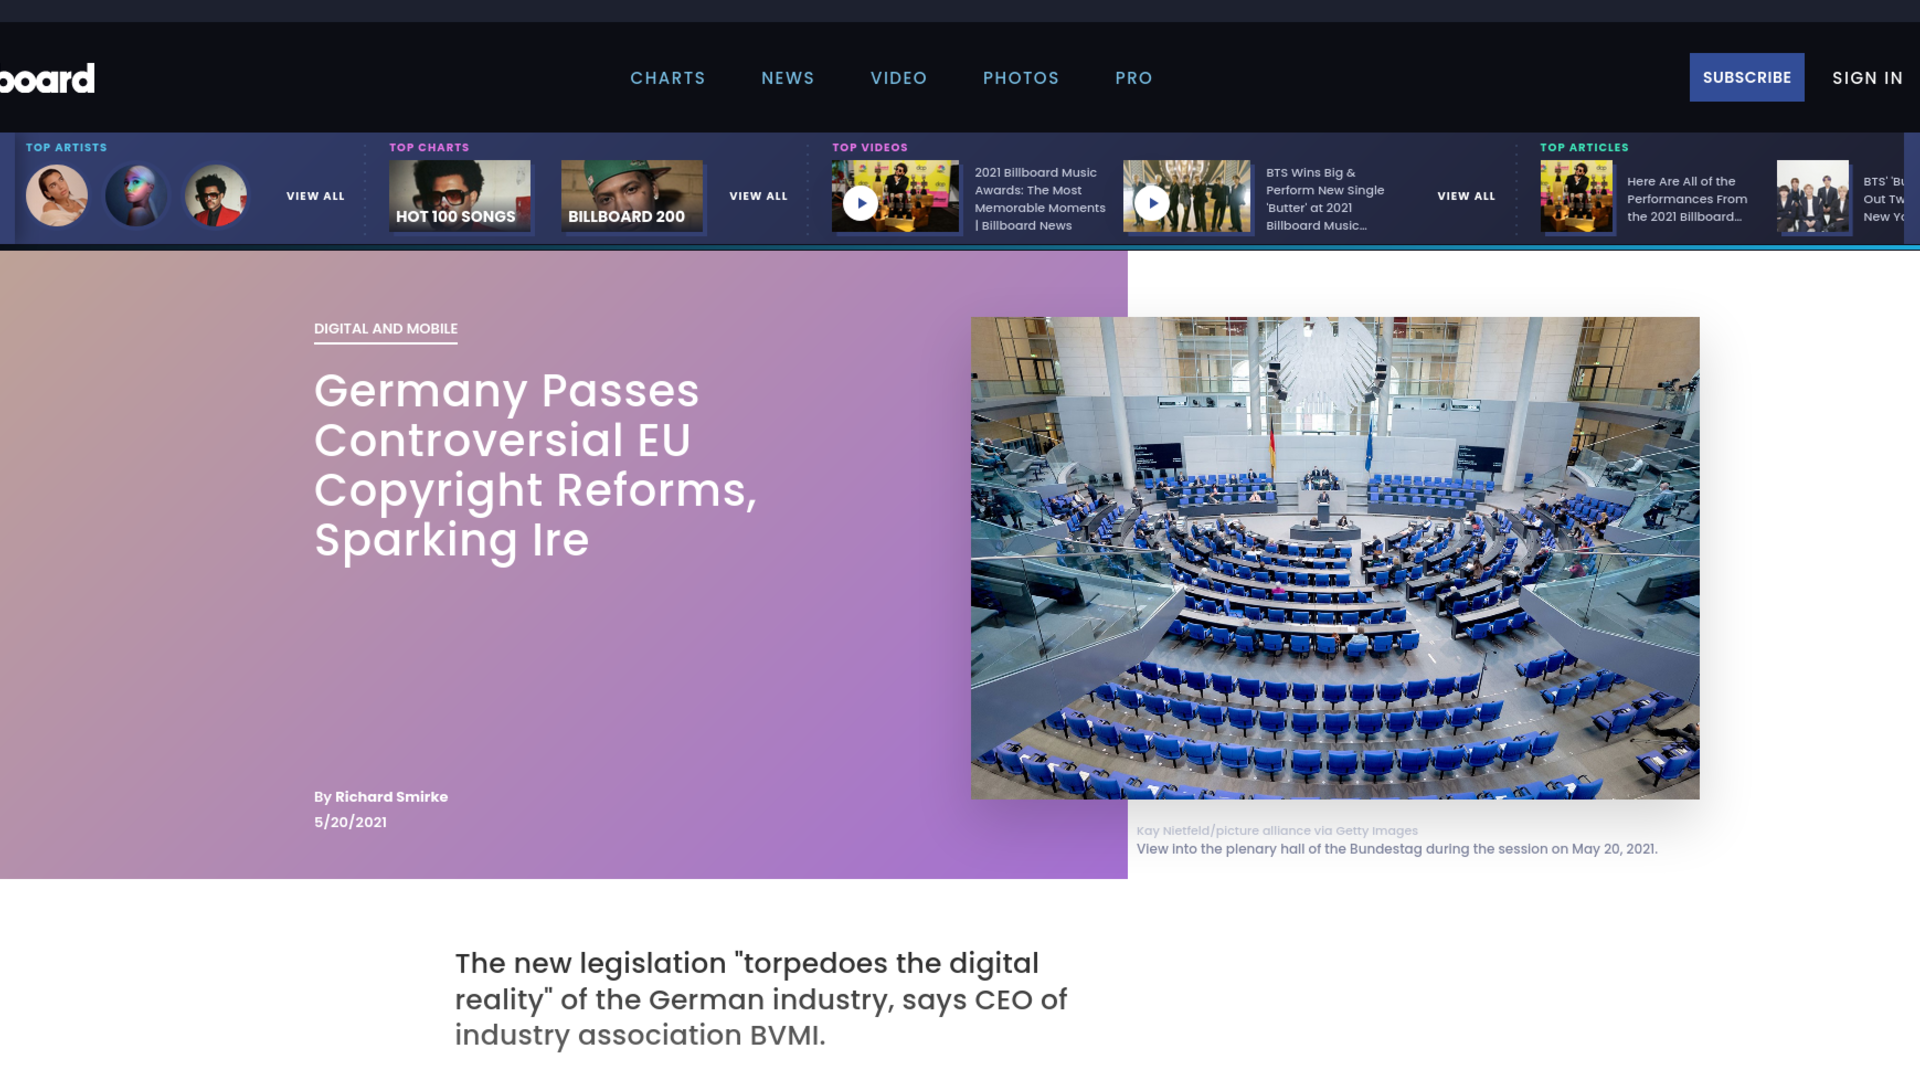 Fairness Rocks News Germany Passes Controversial EU Copyright Reforms, Sparking Ire